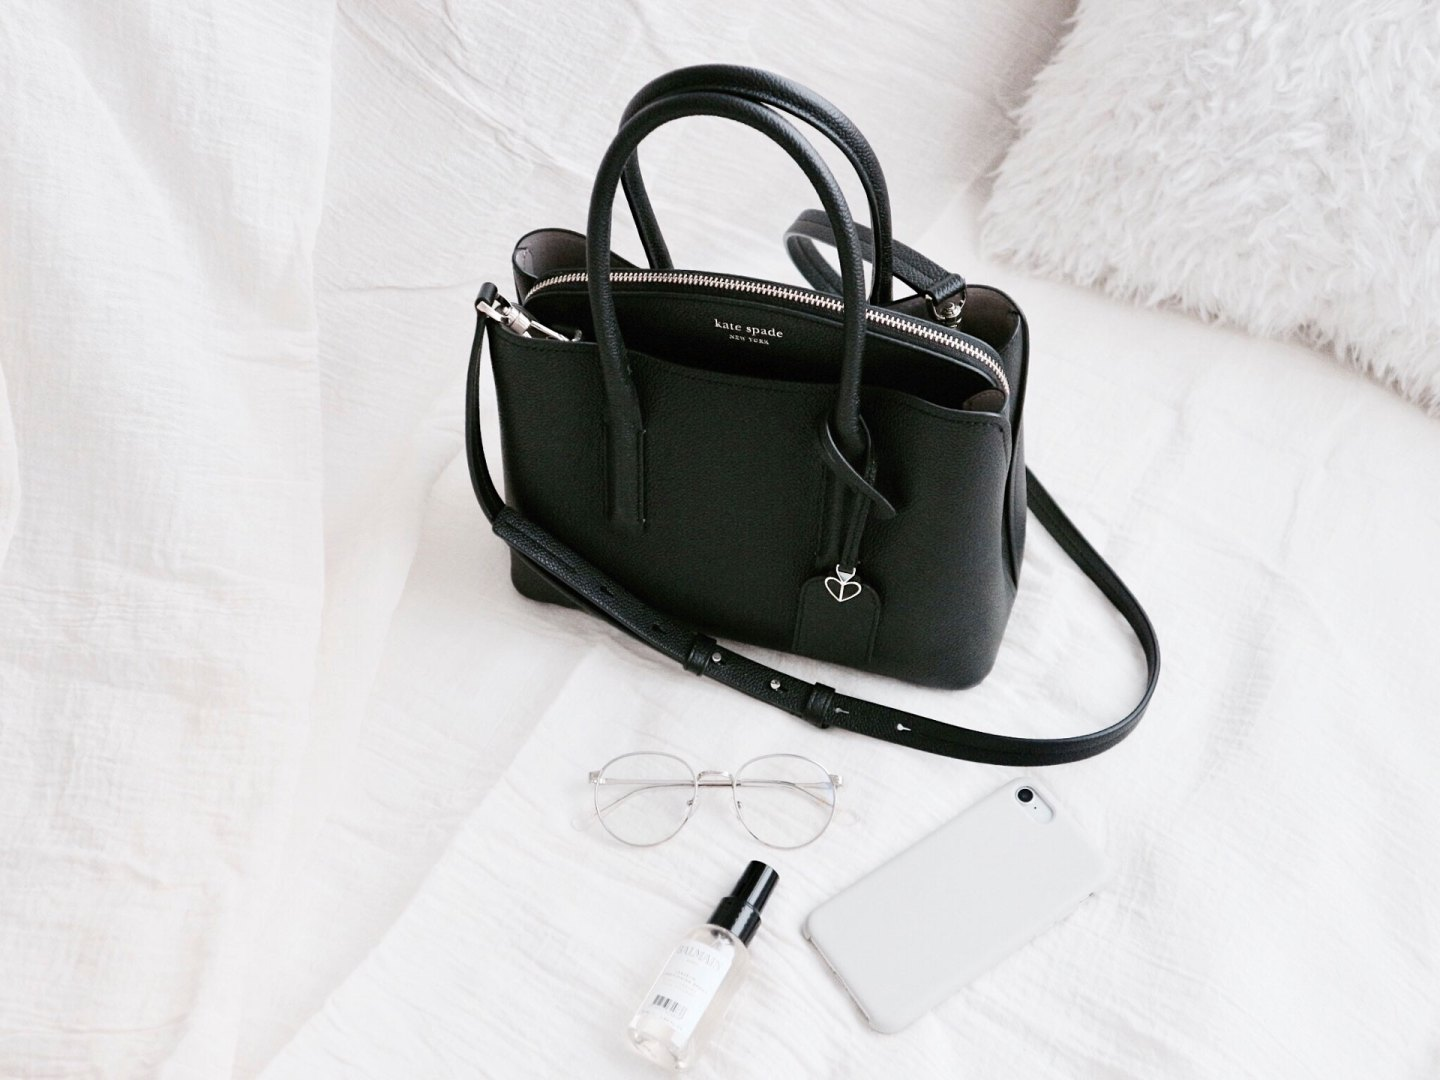 I Bought My First Designer Bag And Here's What You Need To Know | Neeltje's Thoughts: Designer Bags